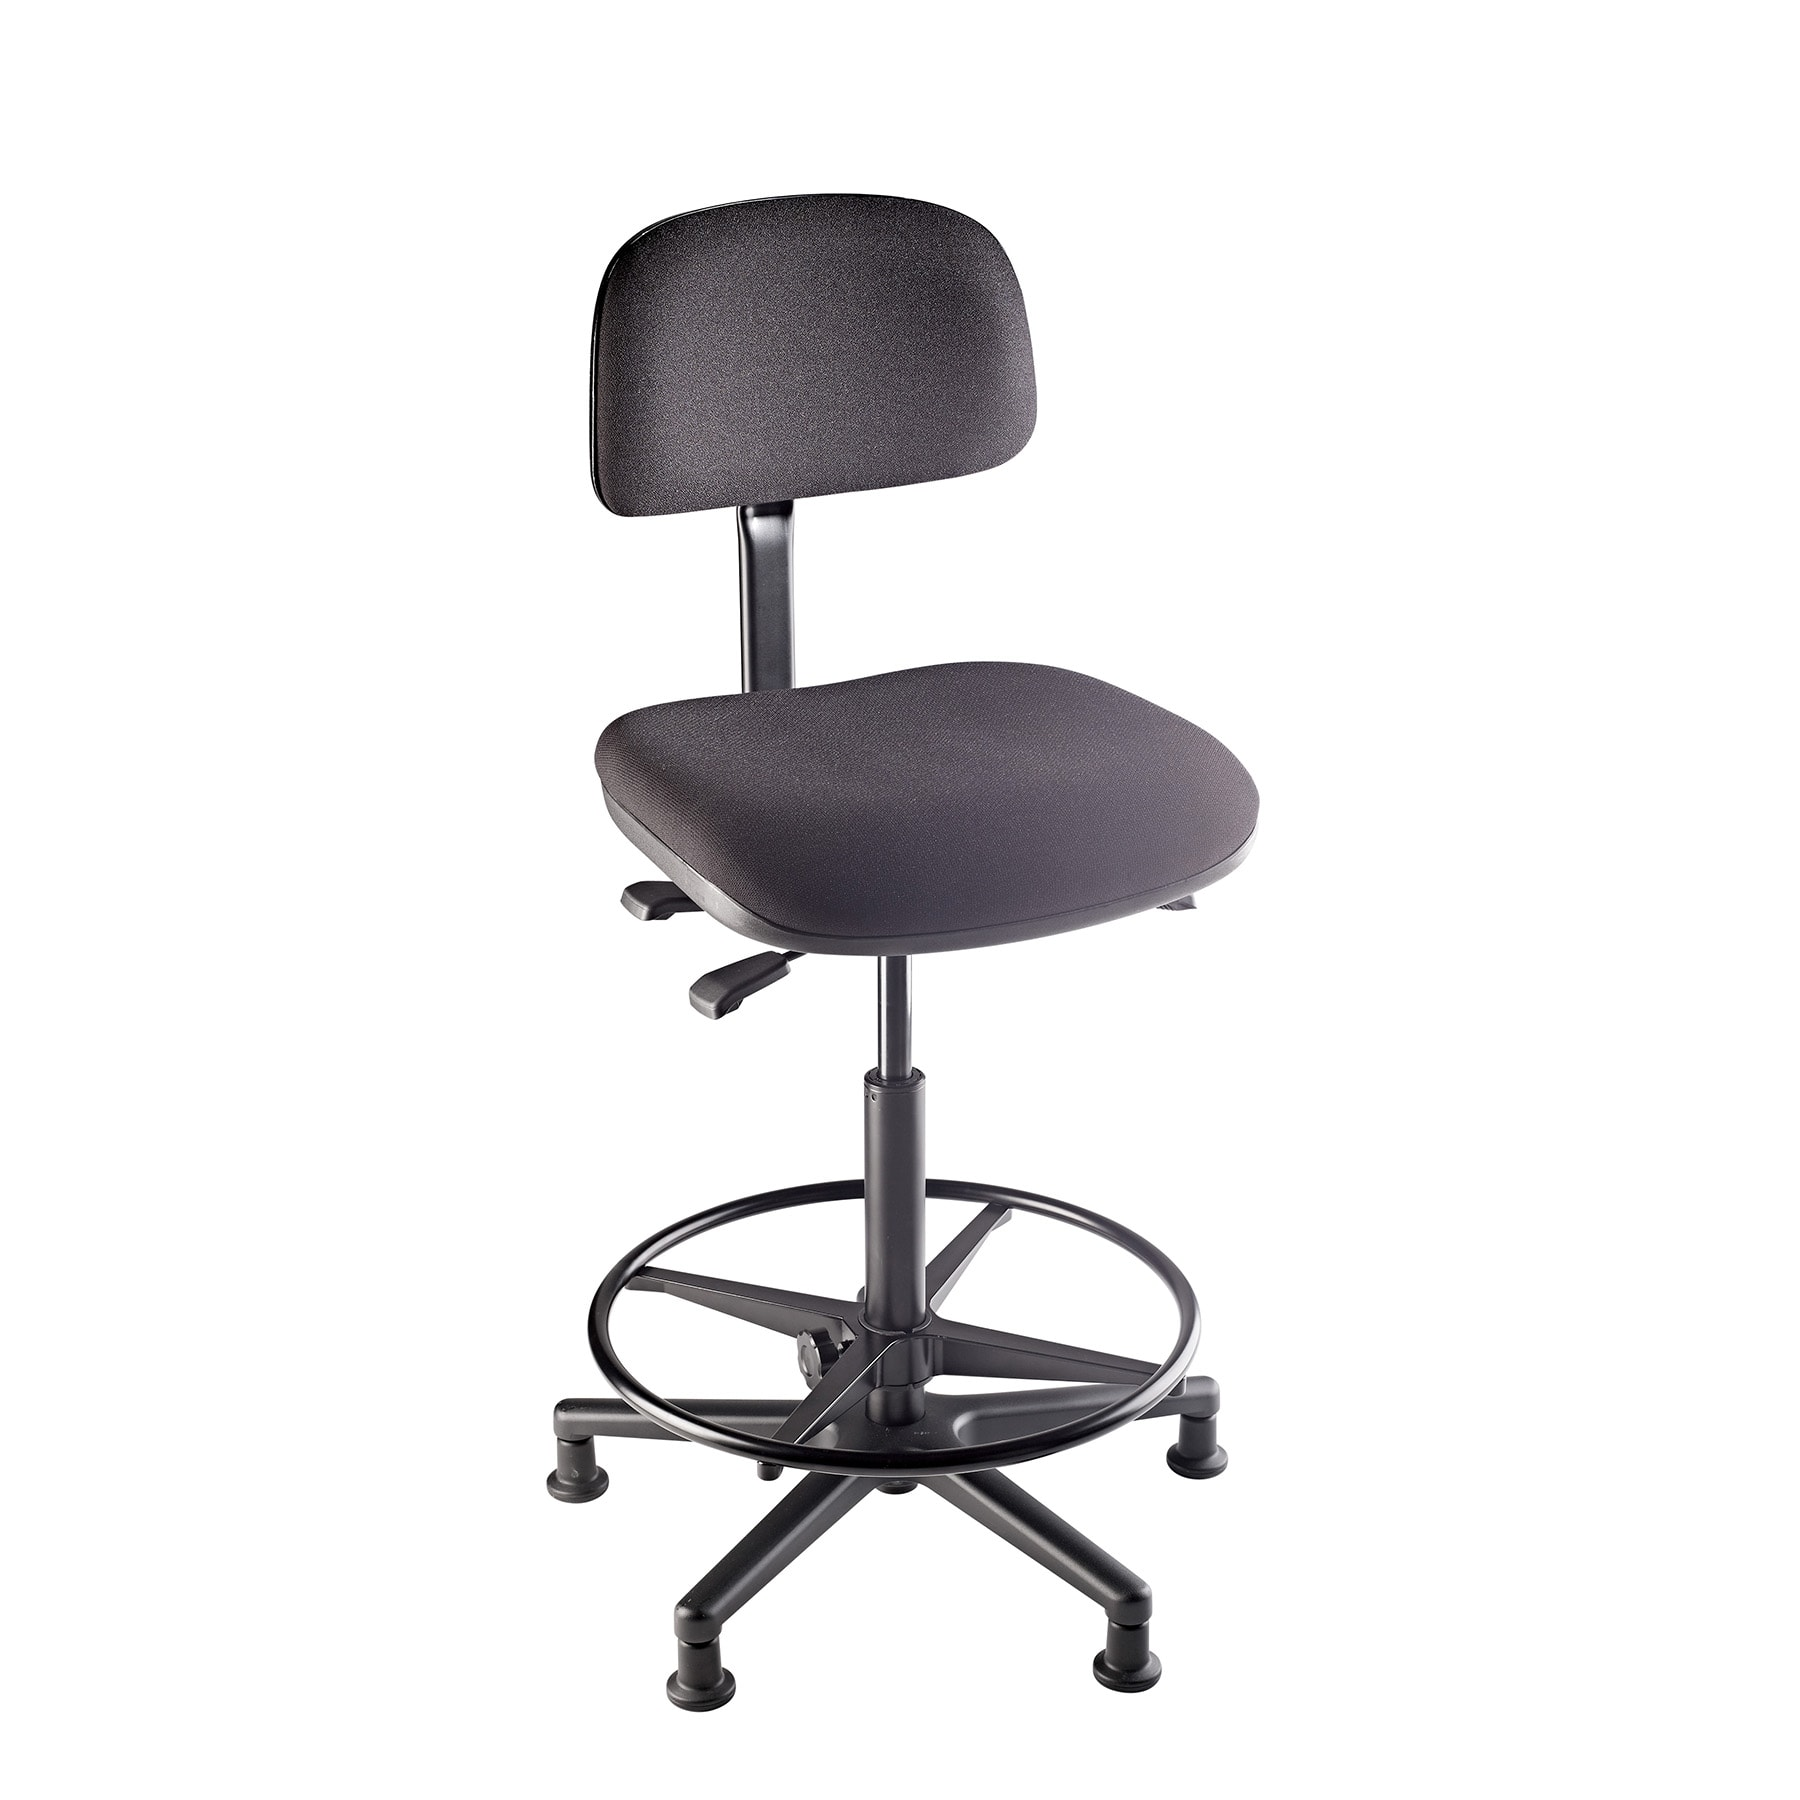 KM13480 - Chair for Kettledrums and Conductor's